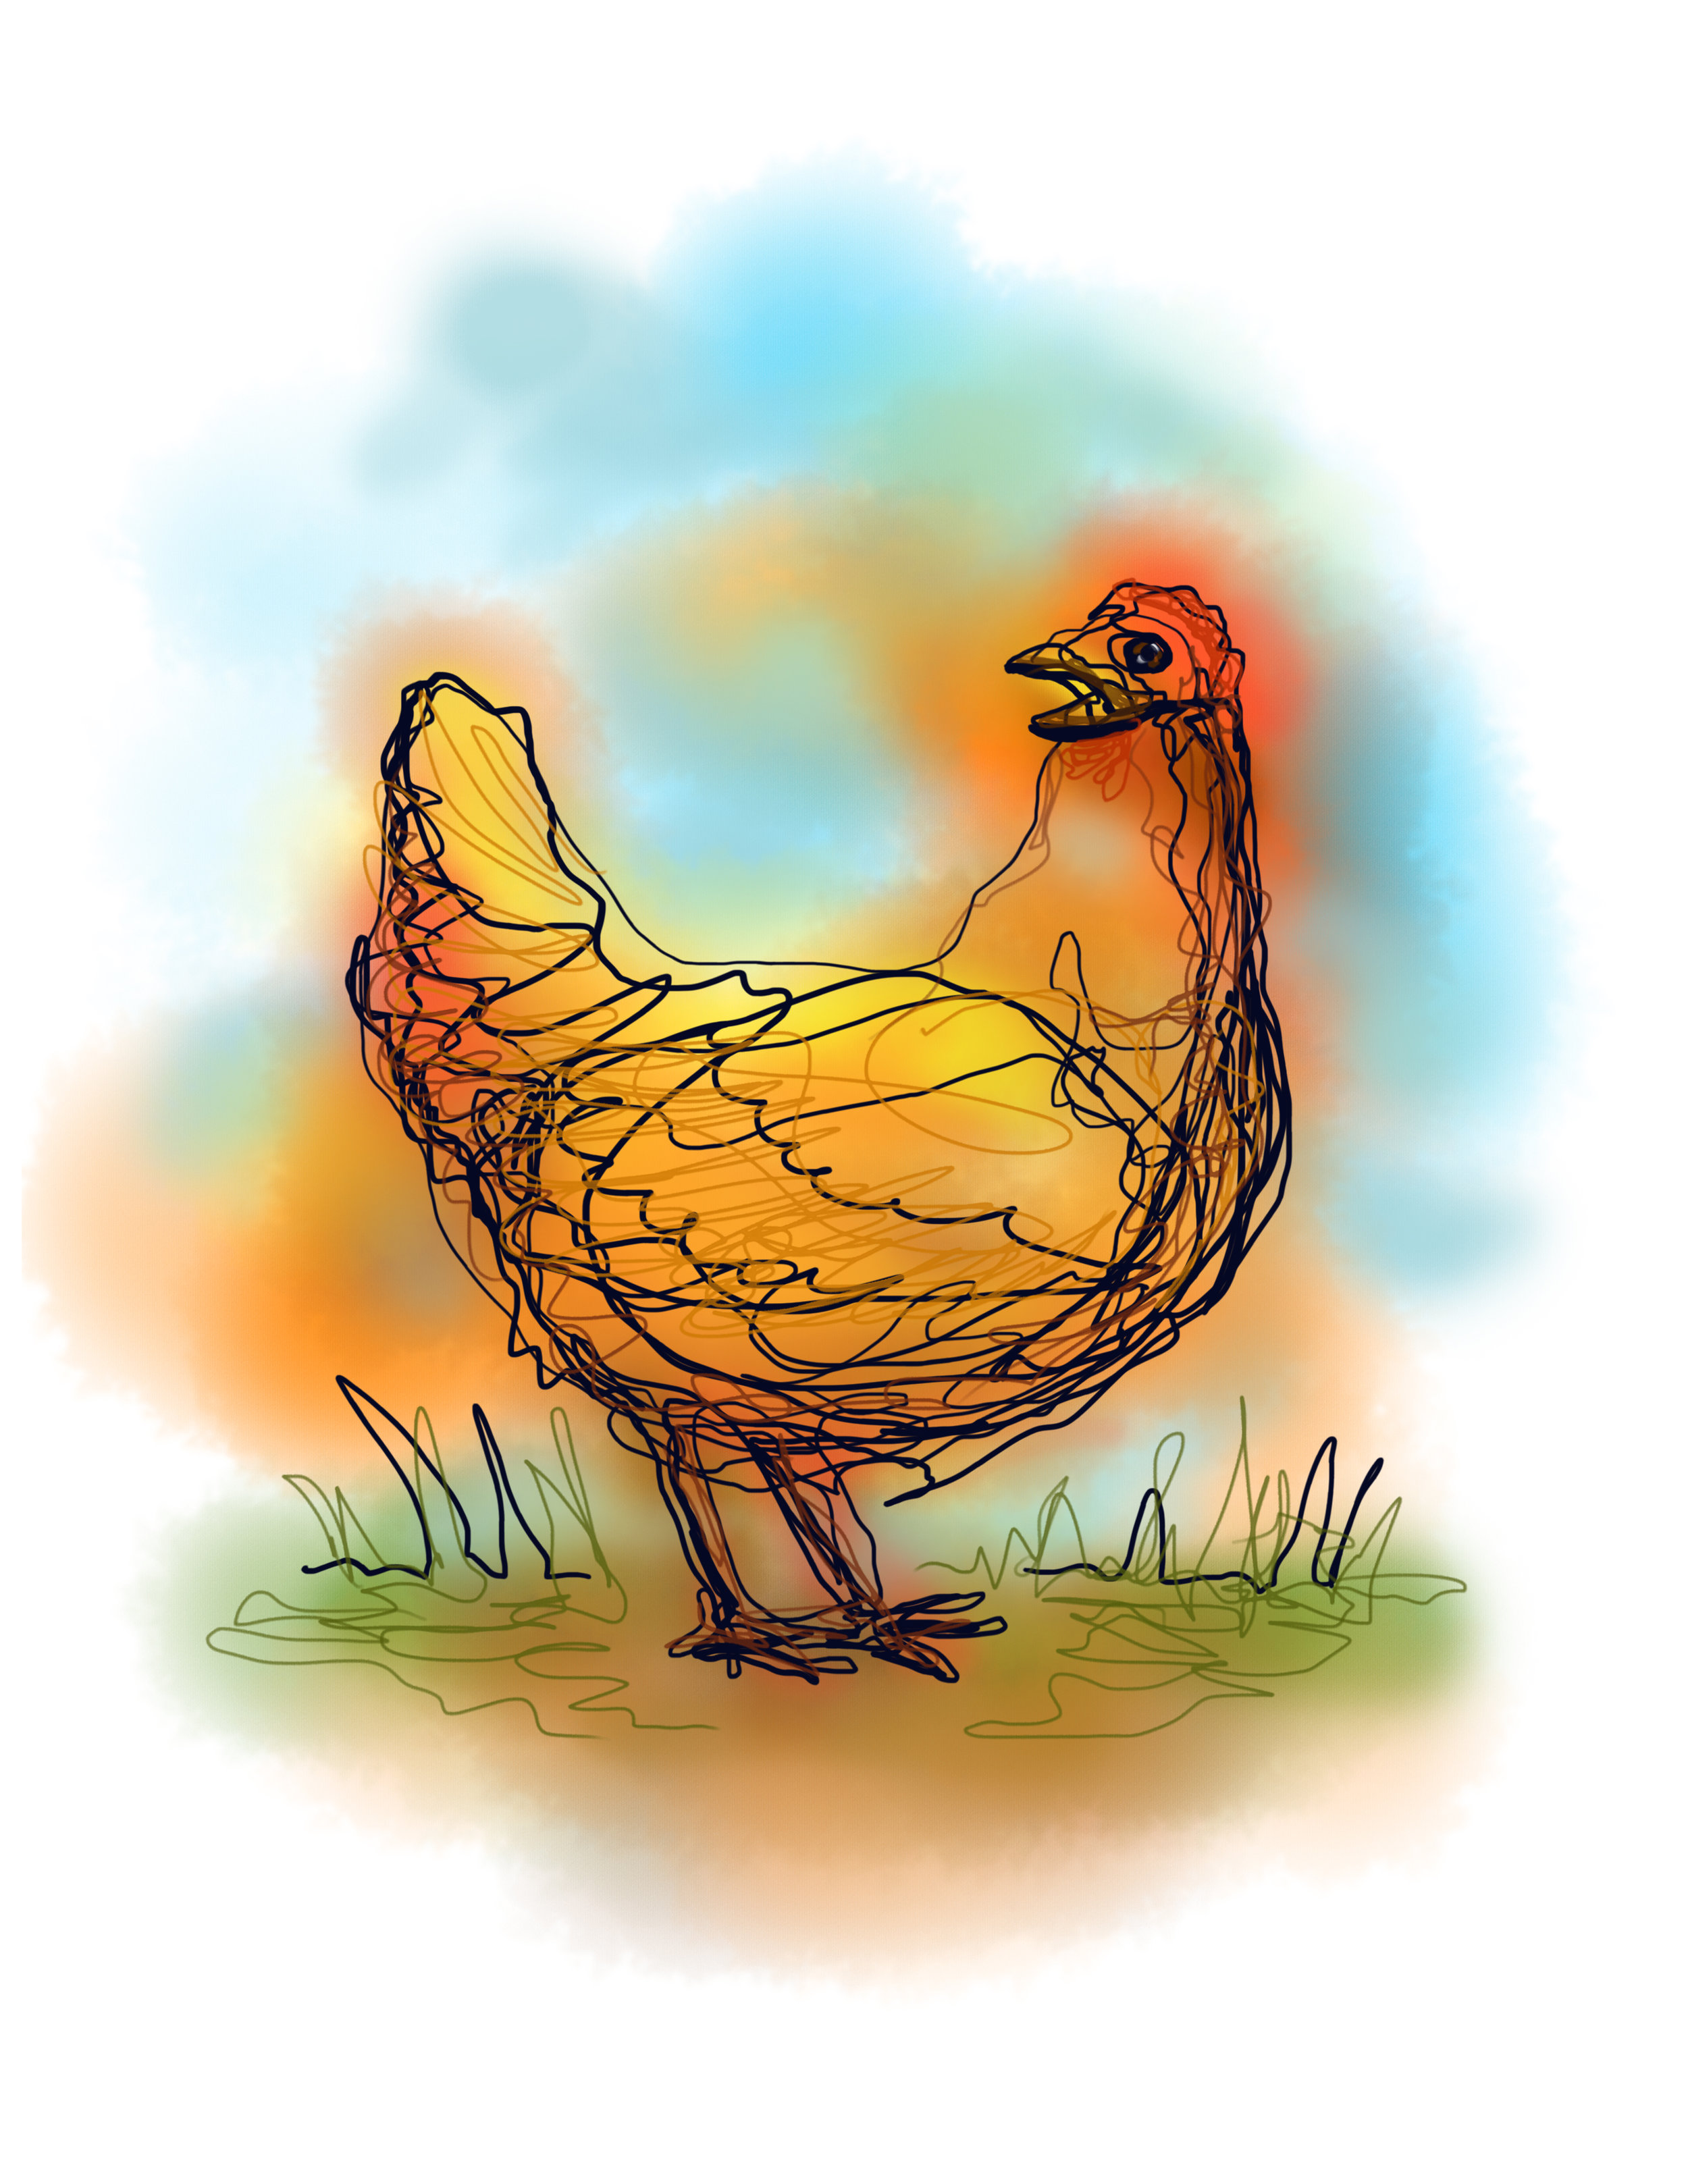 The Chicken.jpg